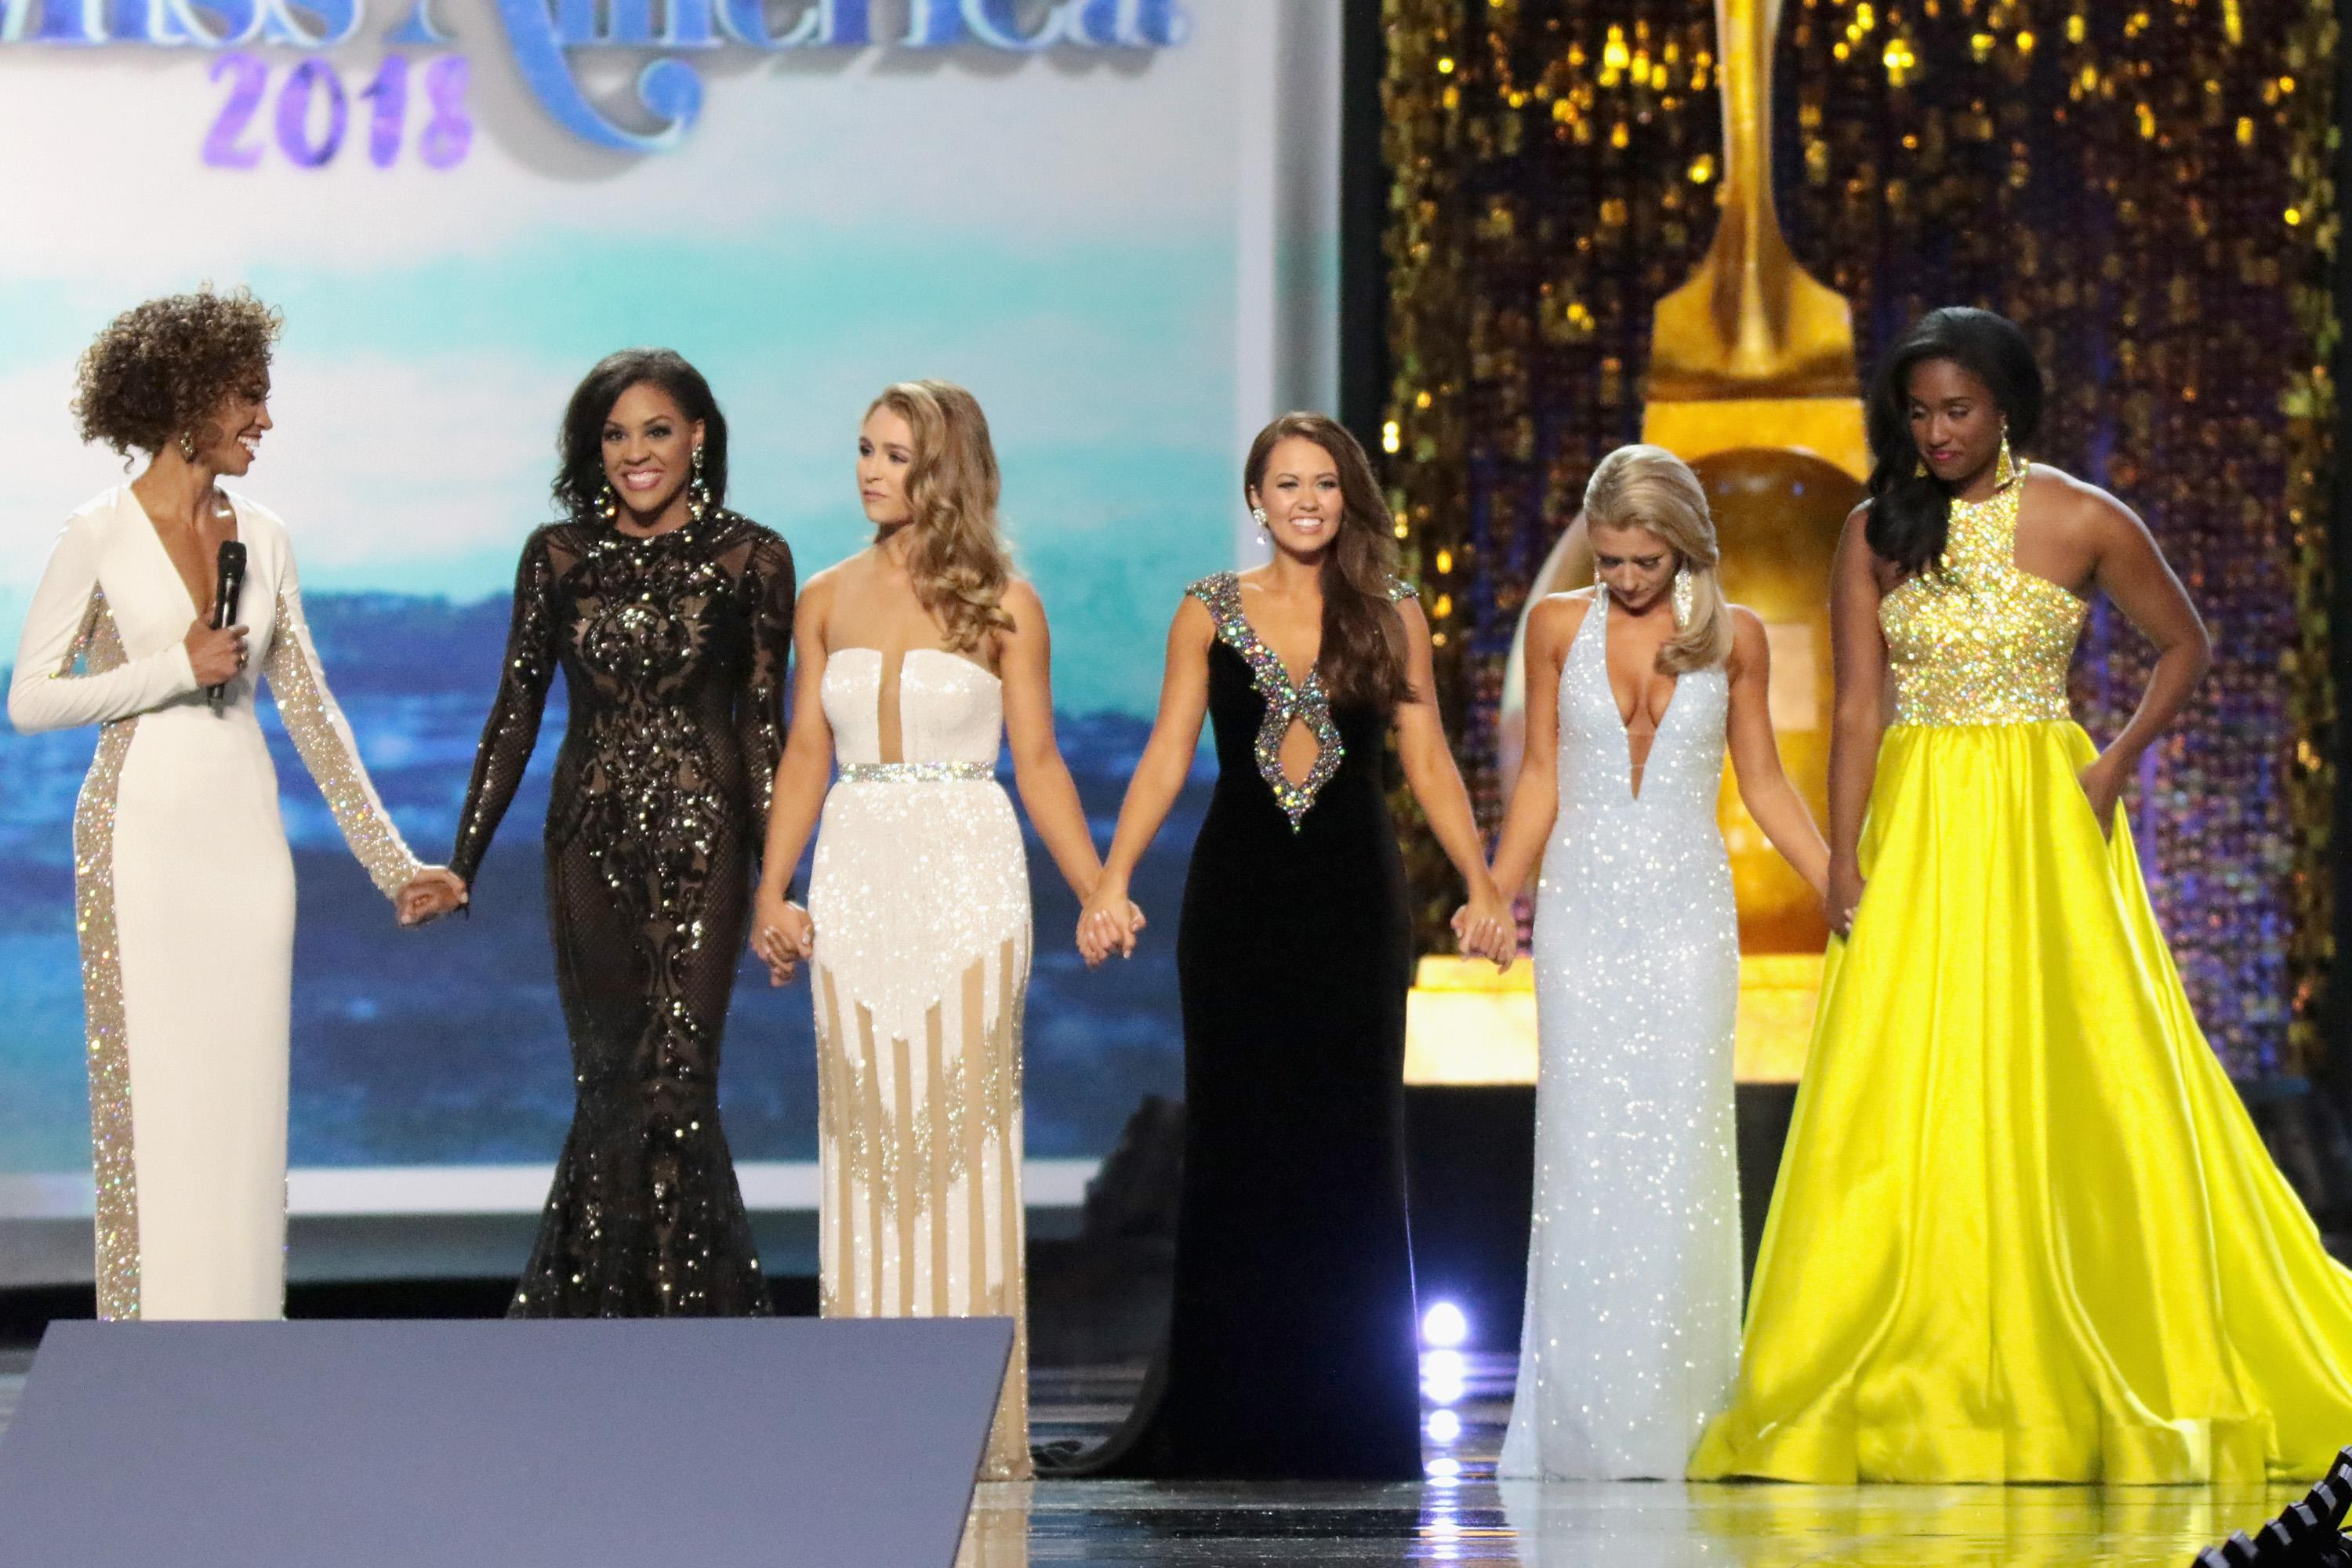 Miss America contestants dressed in gowns hold hands on a stage